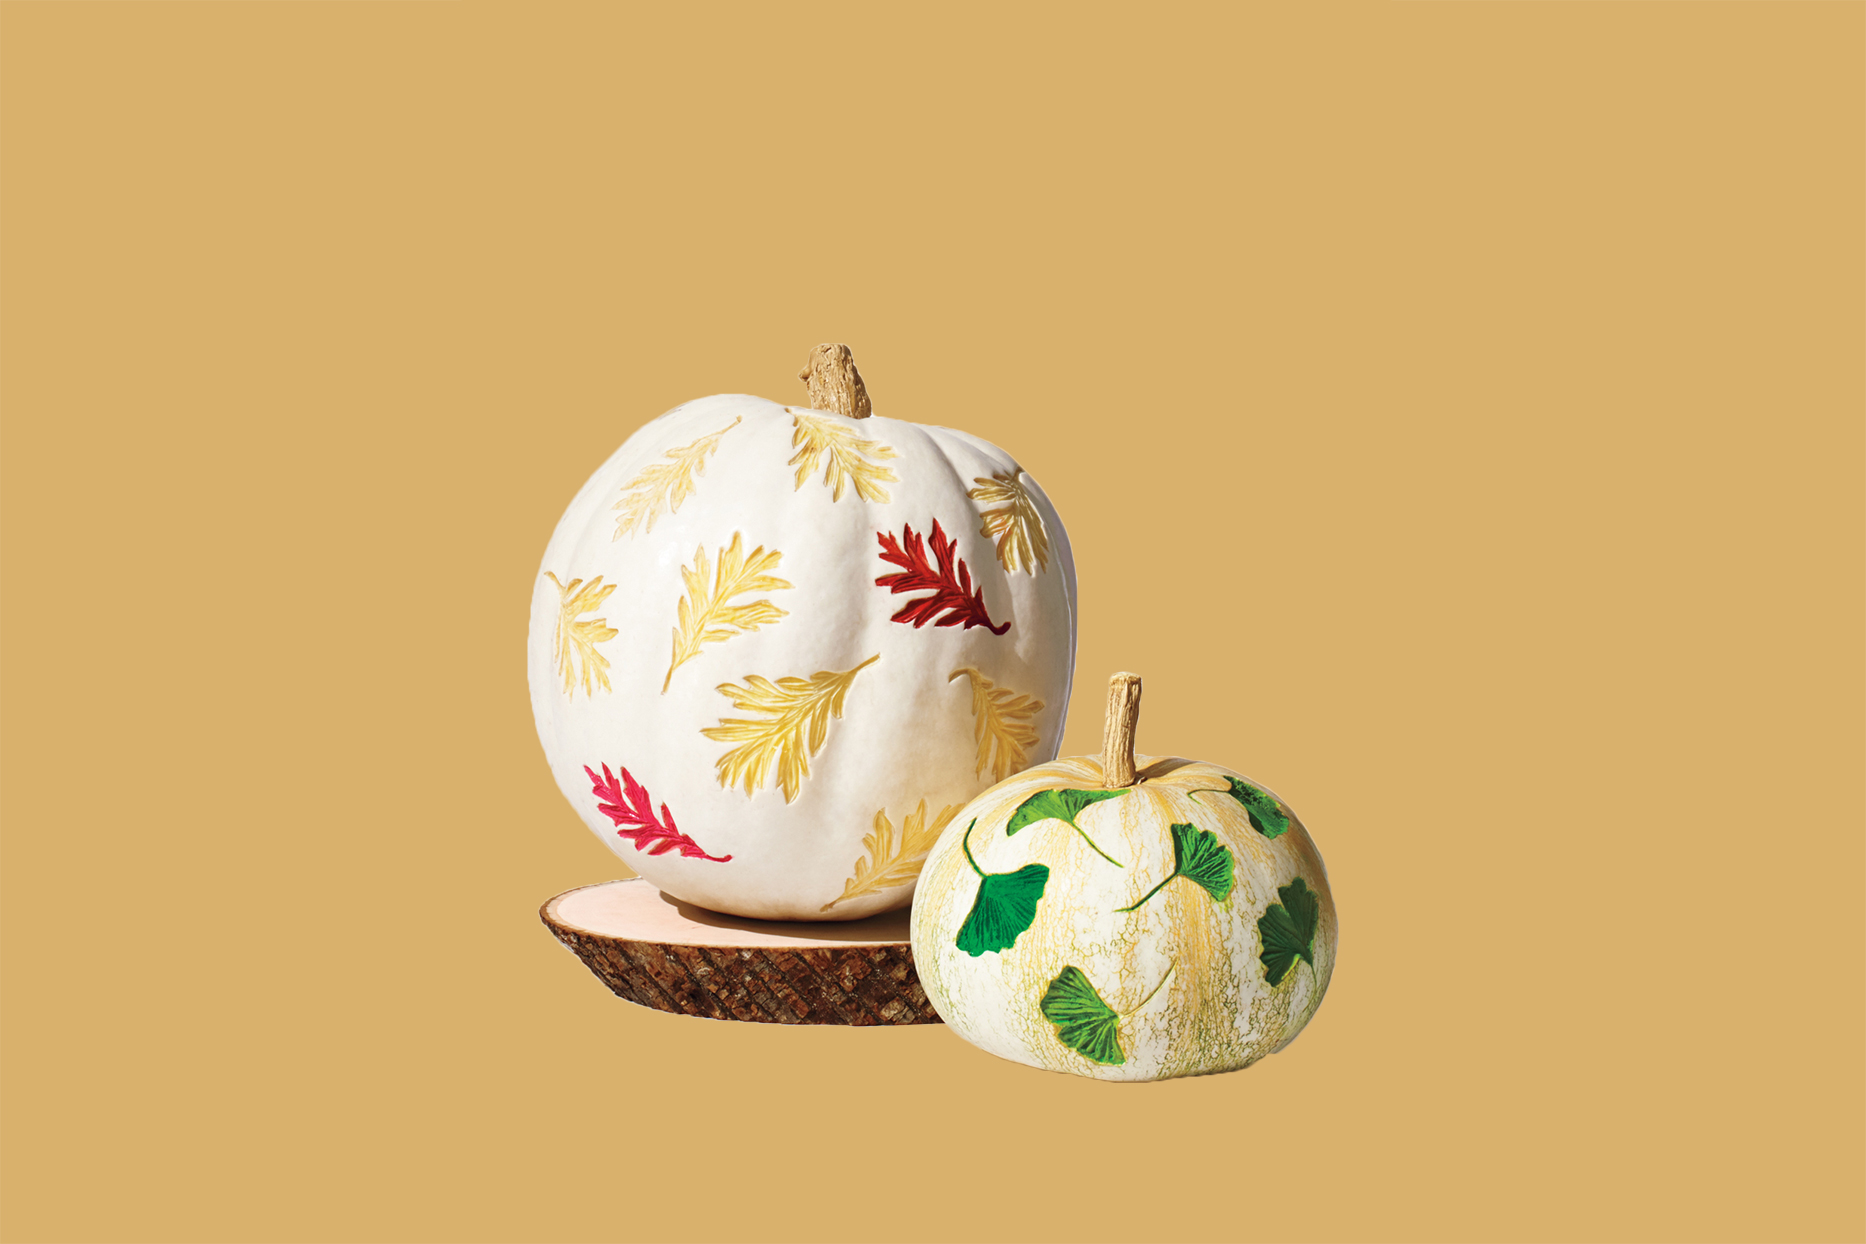 white pumpkins etched with leaves